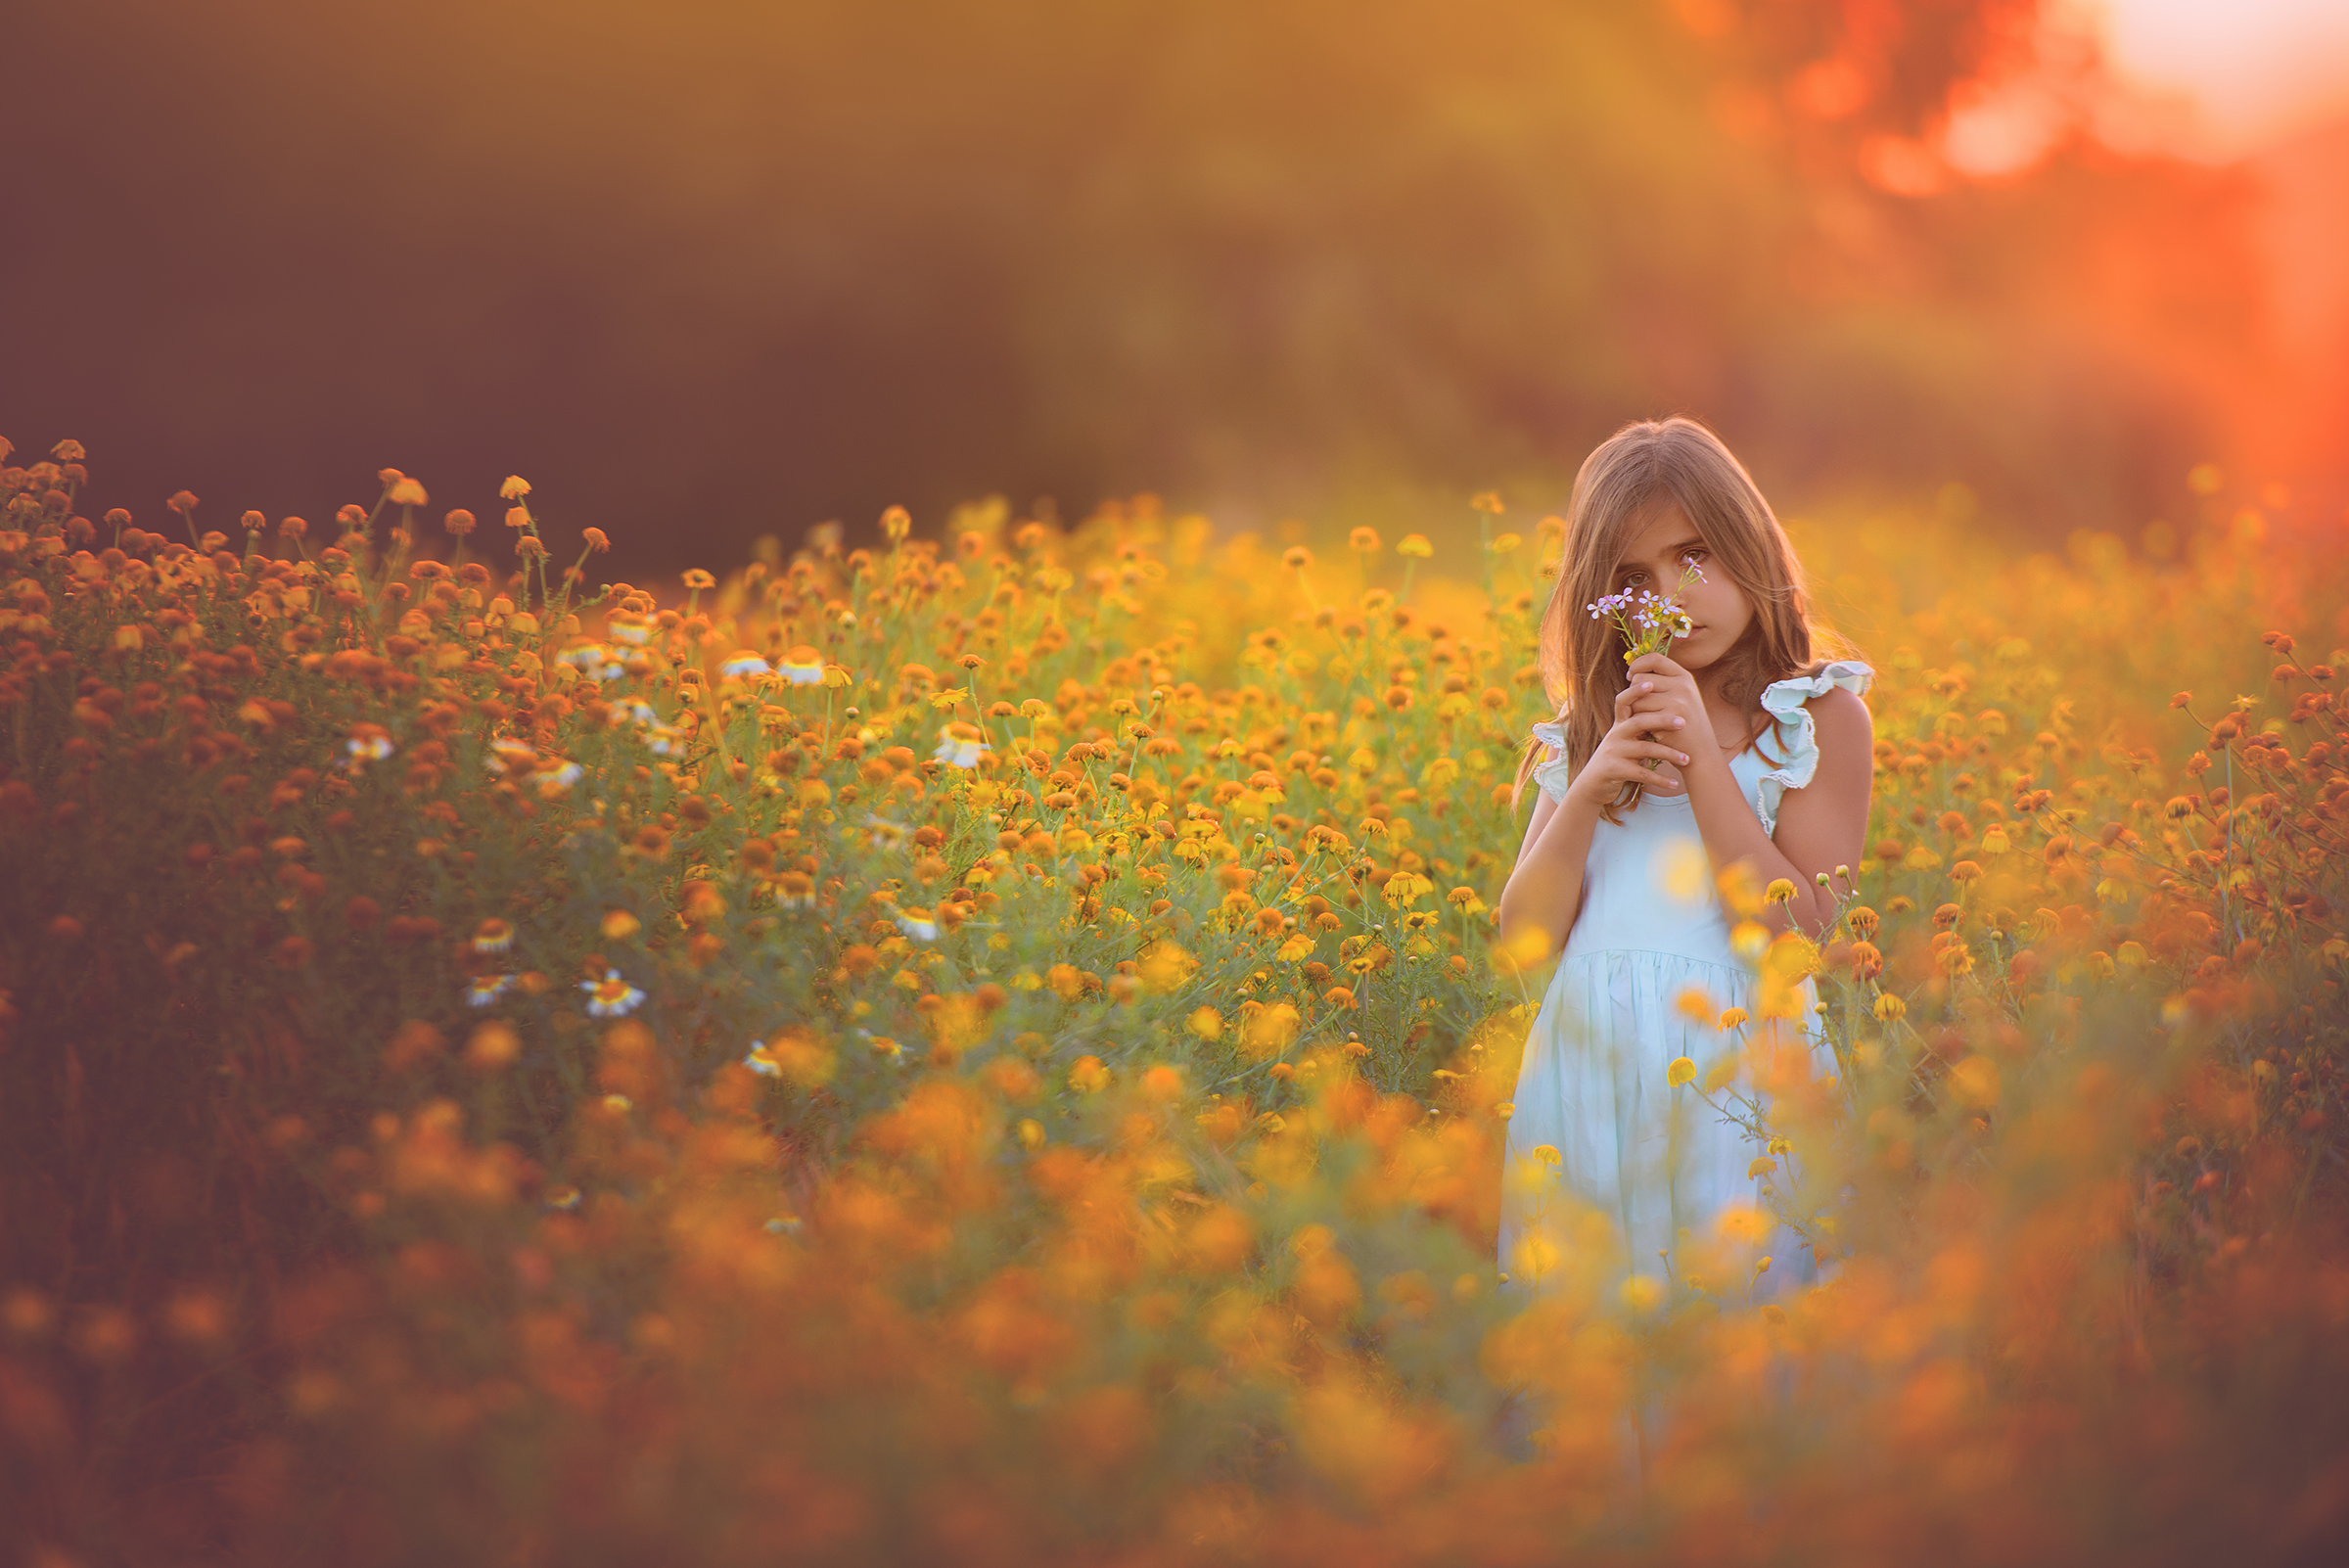 Yellow and orange flower field in wildflower location for spring portrait photos